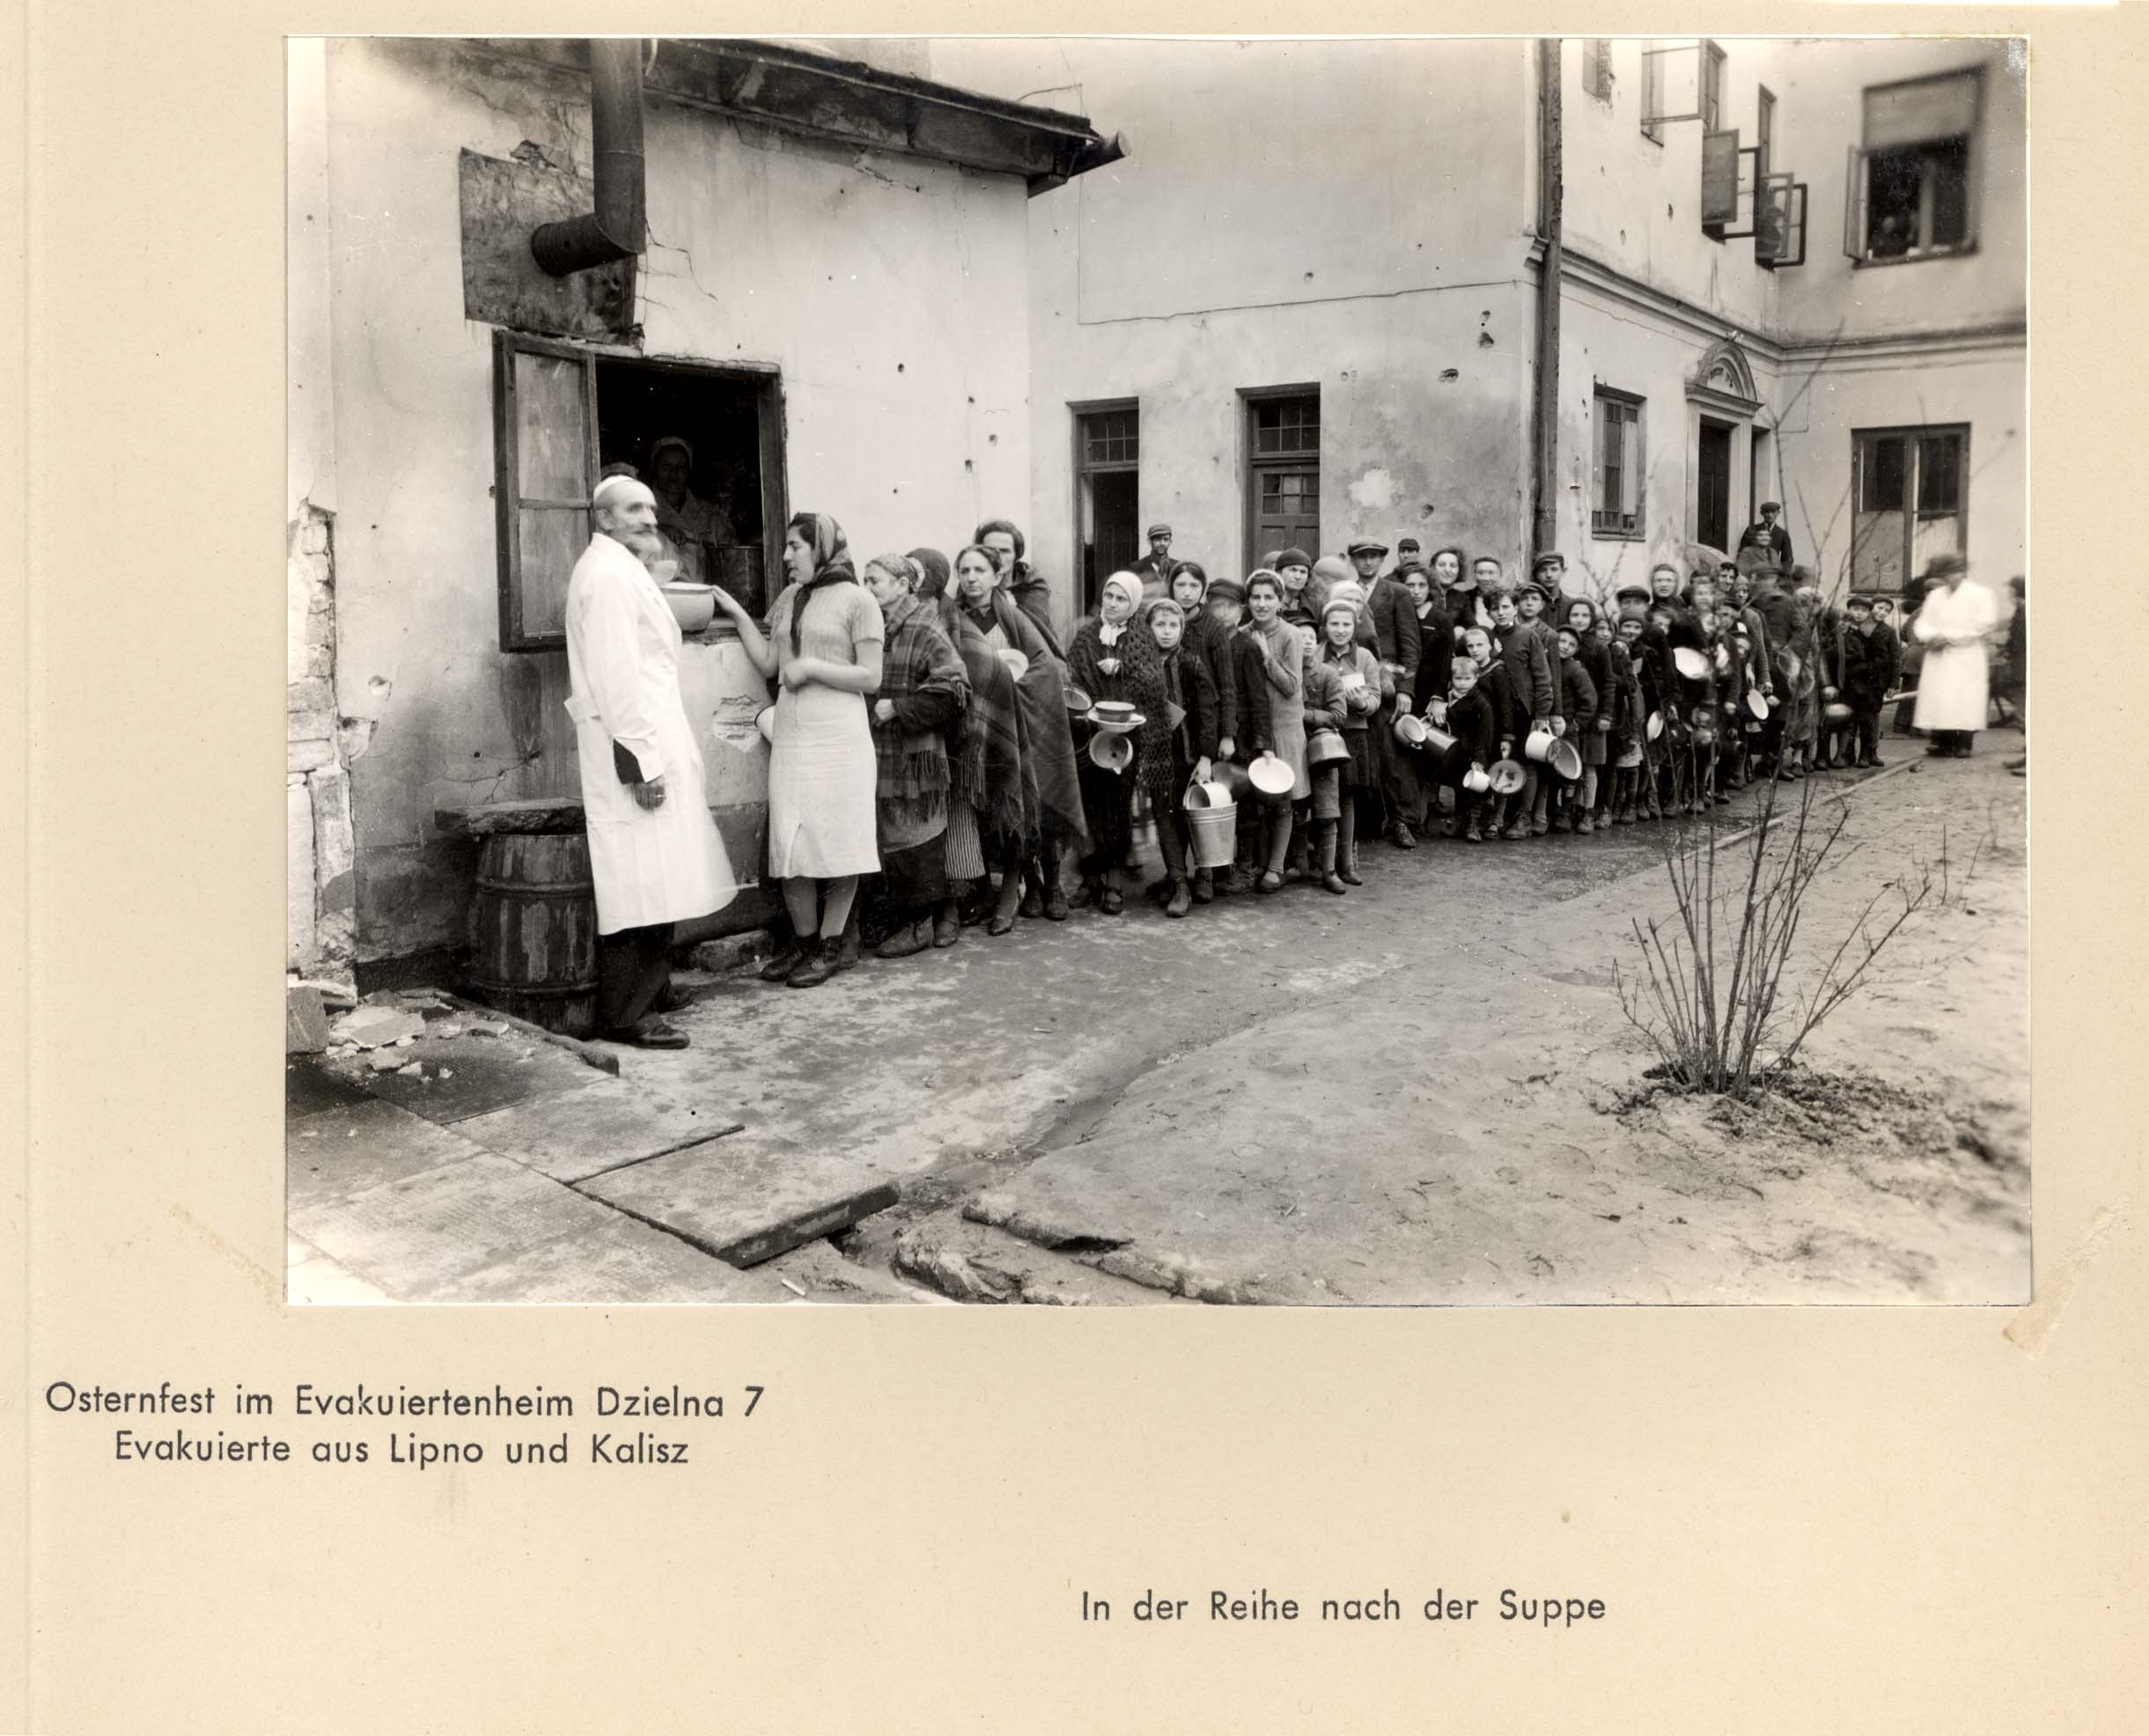 Warsaw, Poland, People lined up at a public kitchen in the ghetto